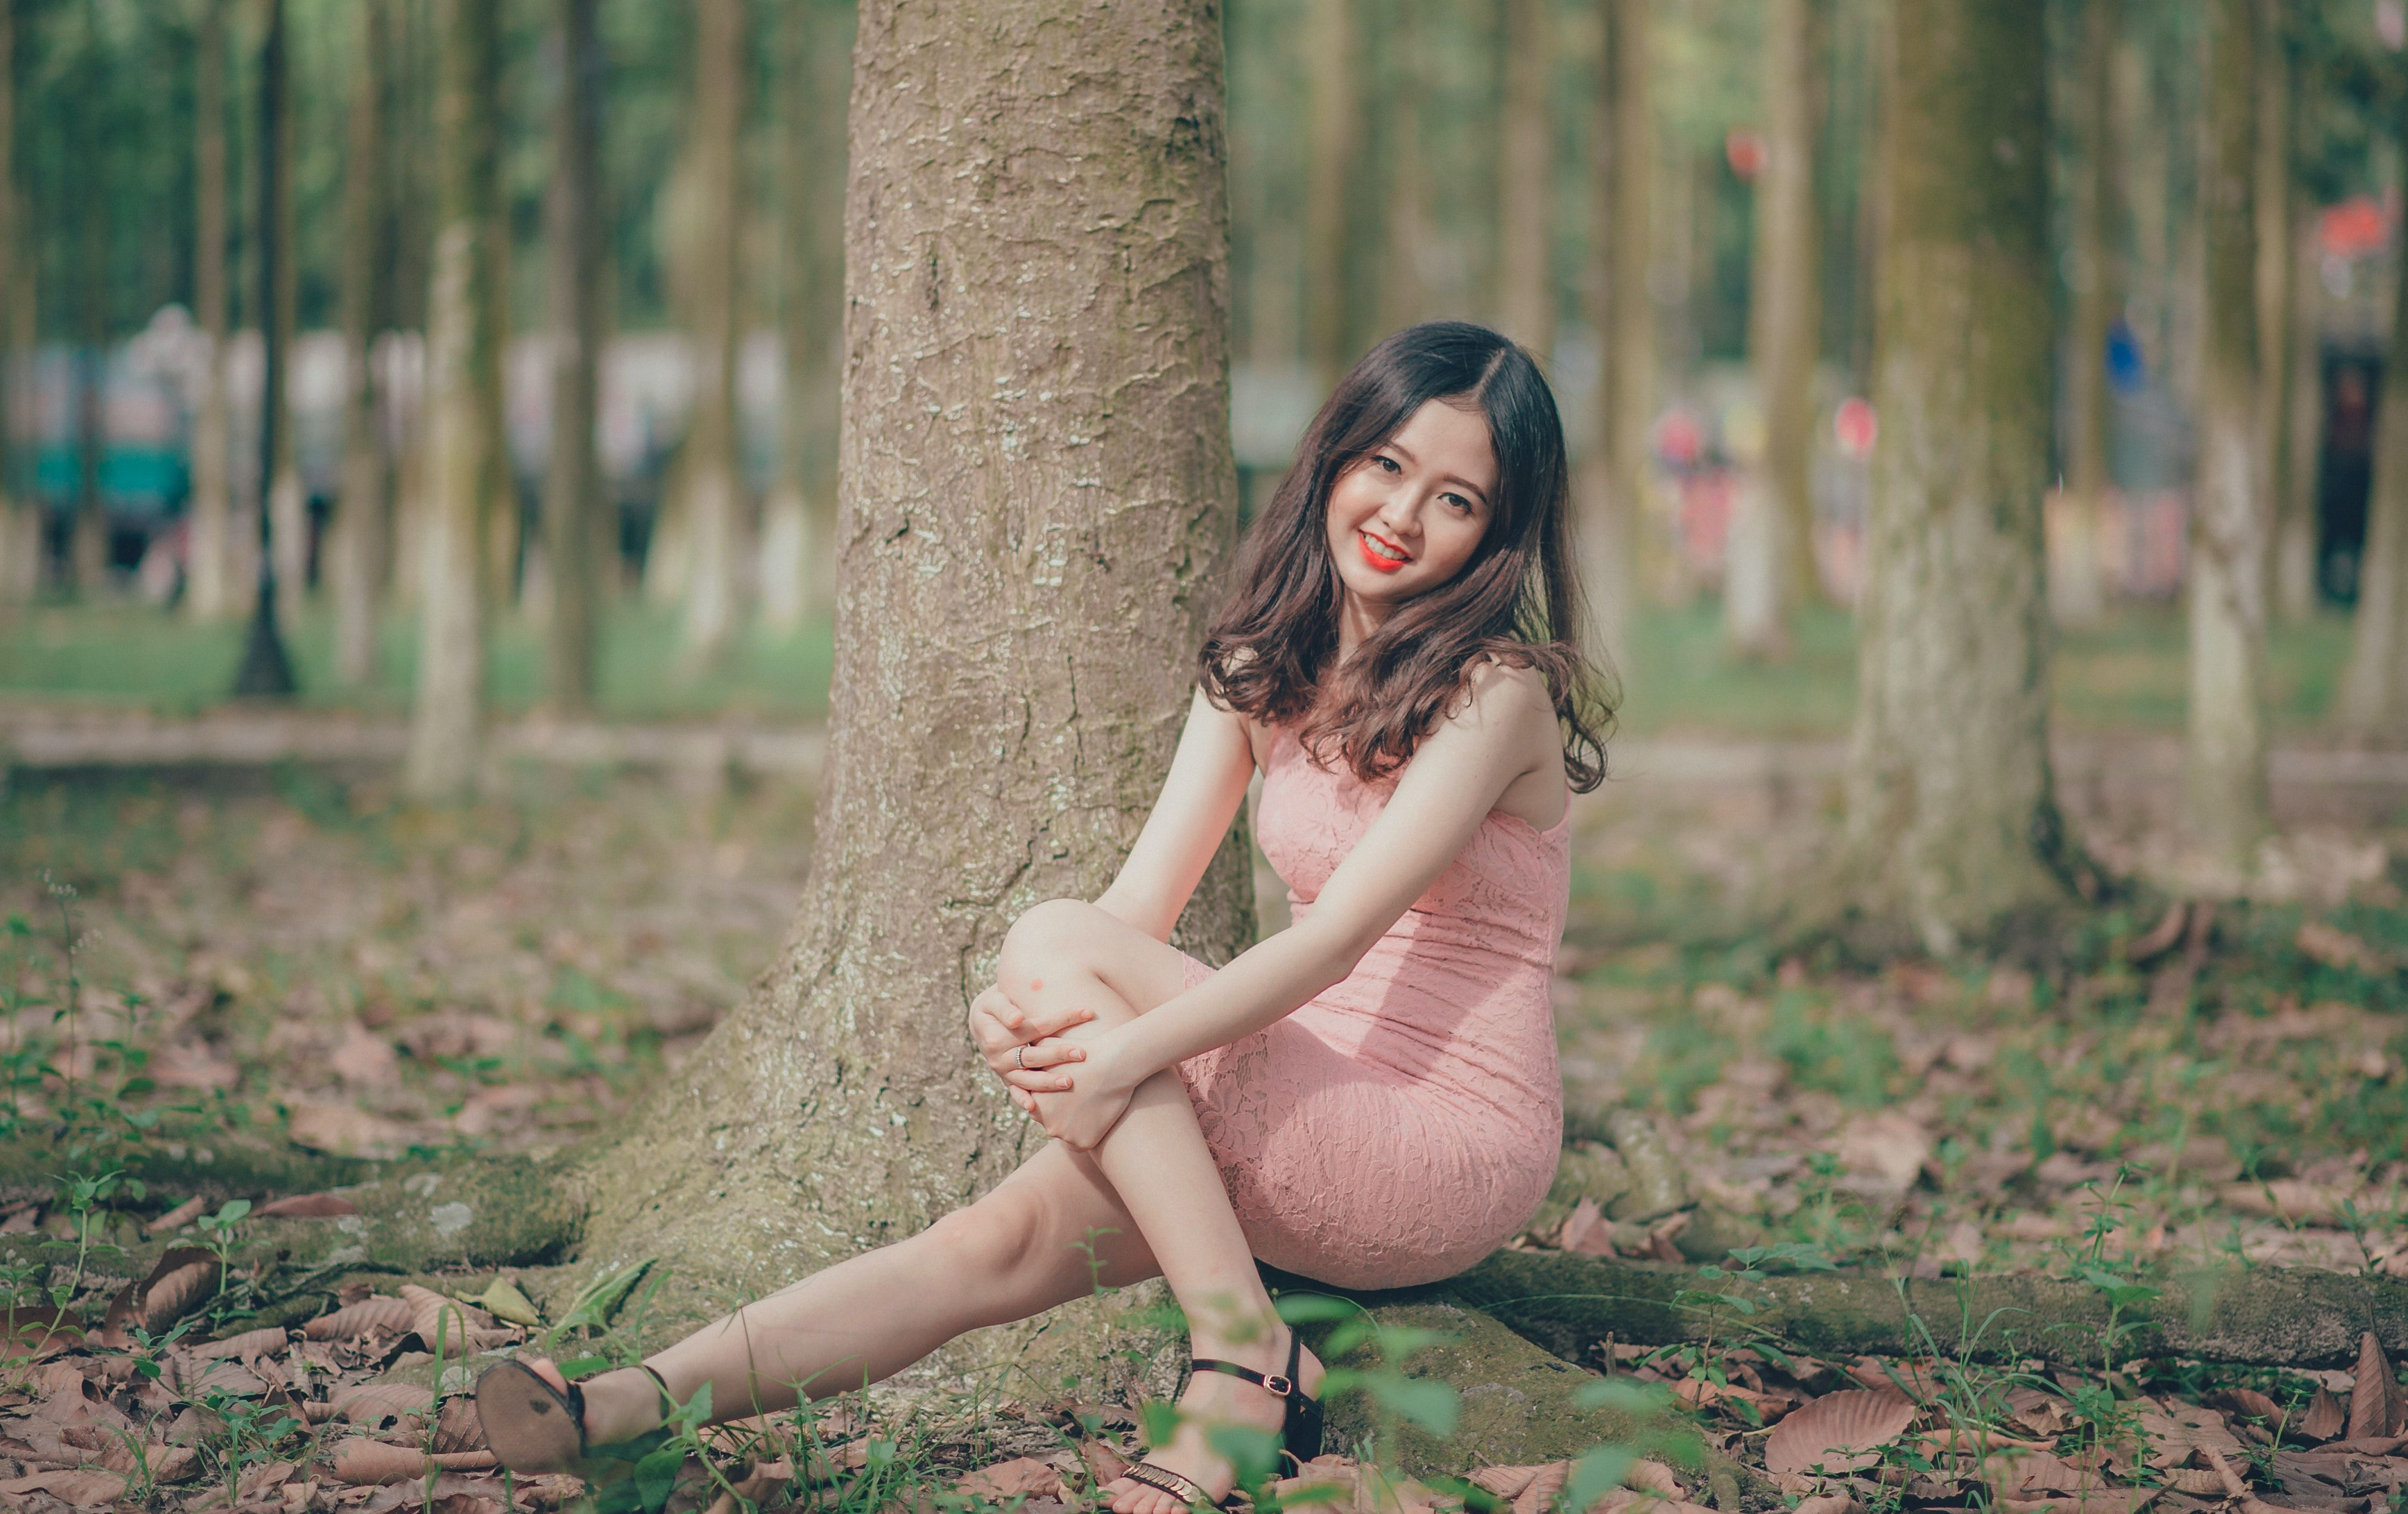 Asian Dating Near Me - Solutions For Best Asian Dating